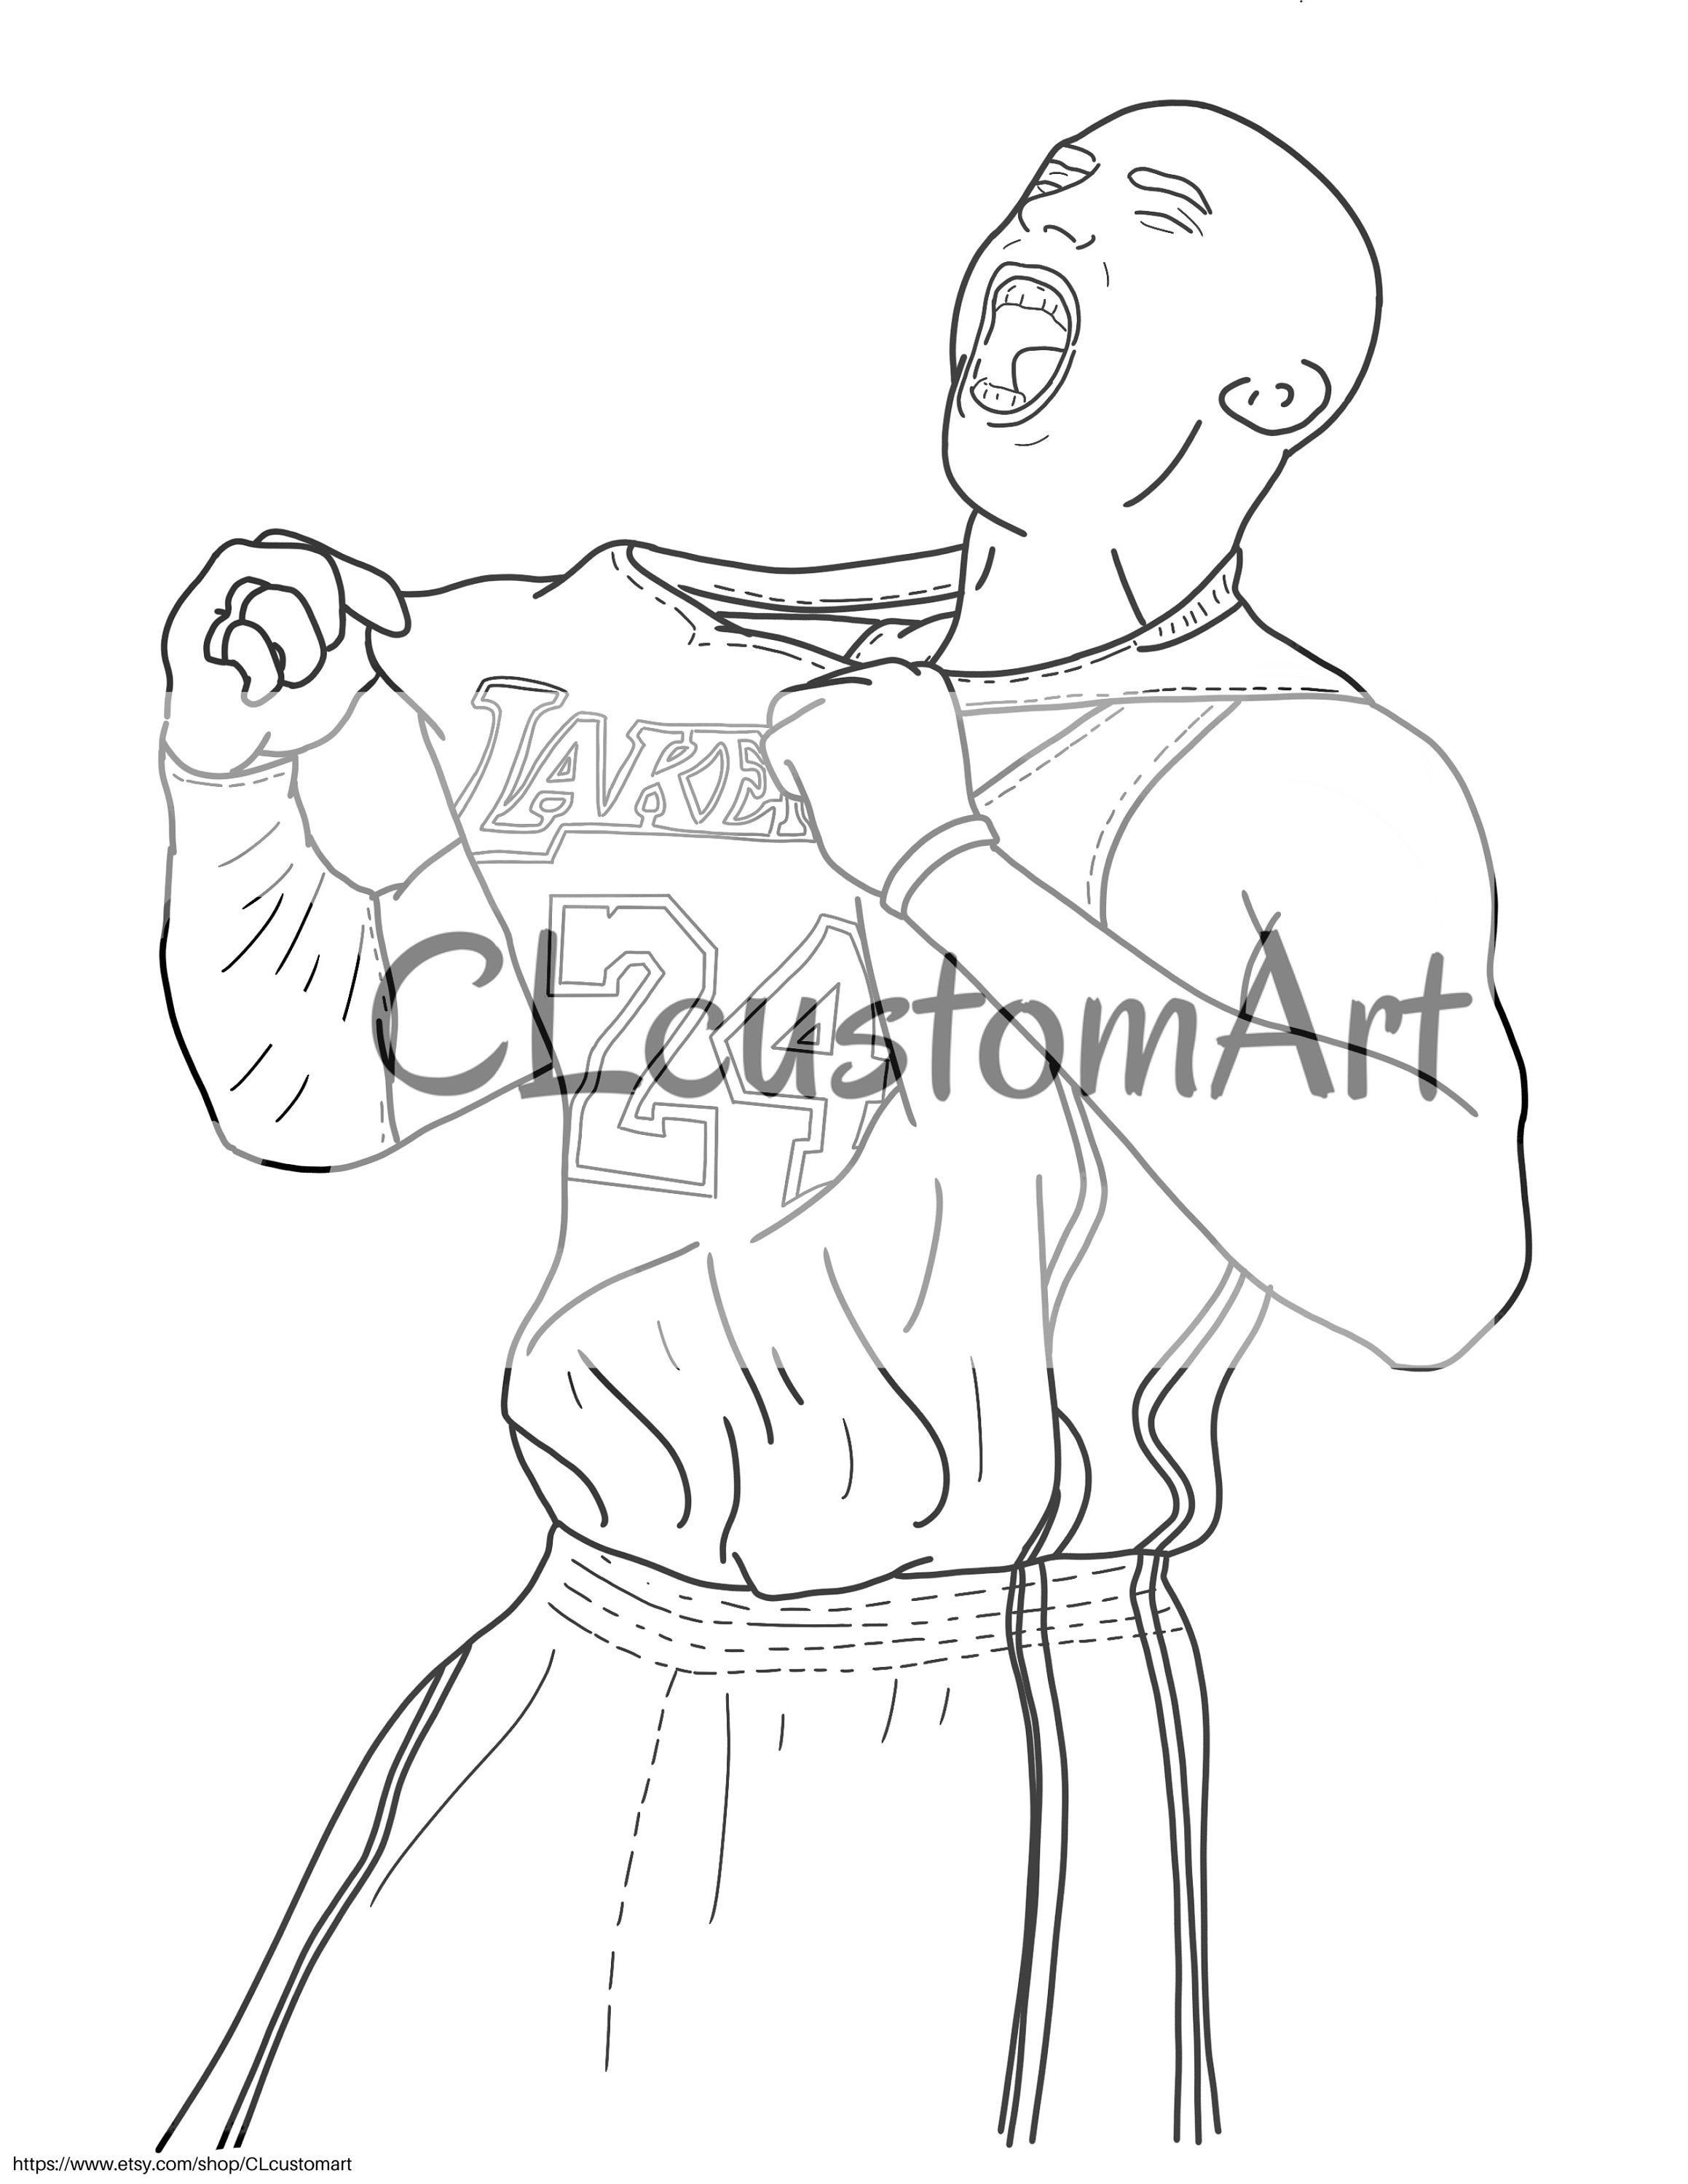 Kobe Bryant Coloring Page Instant Download Etsy Thanksgiving Coloring Pages Coloring Pages Coloring Pages Winter